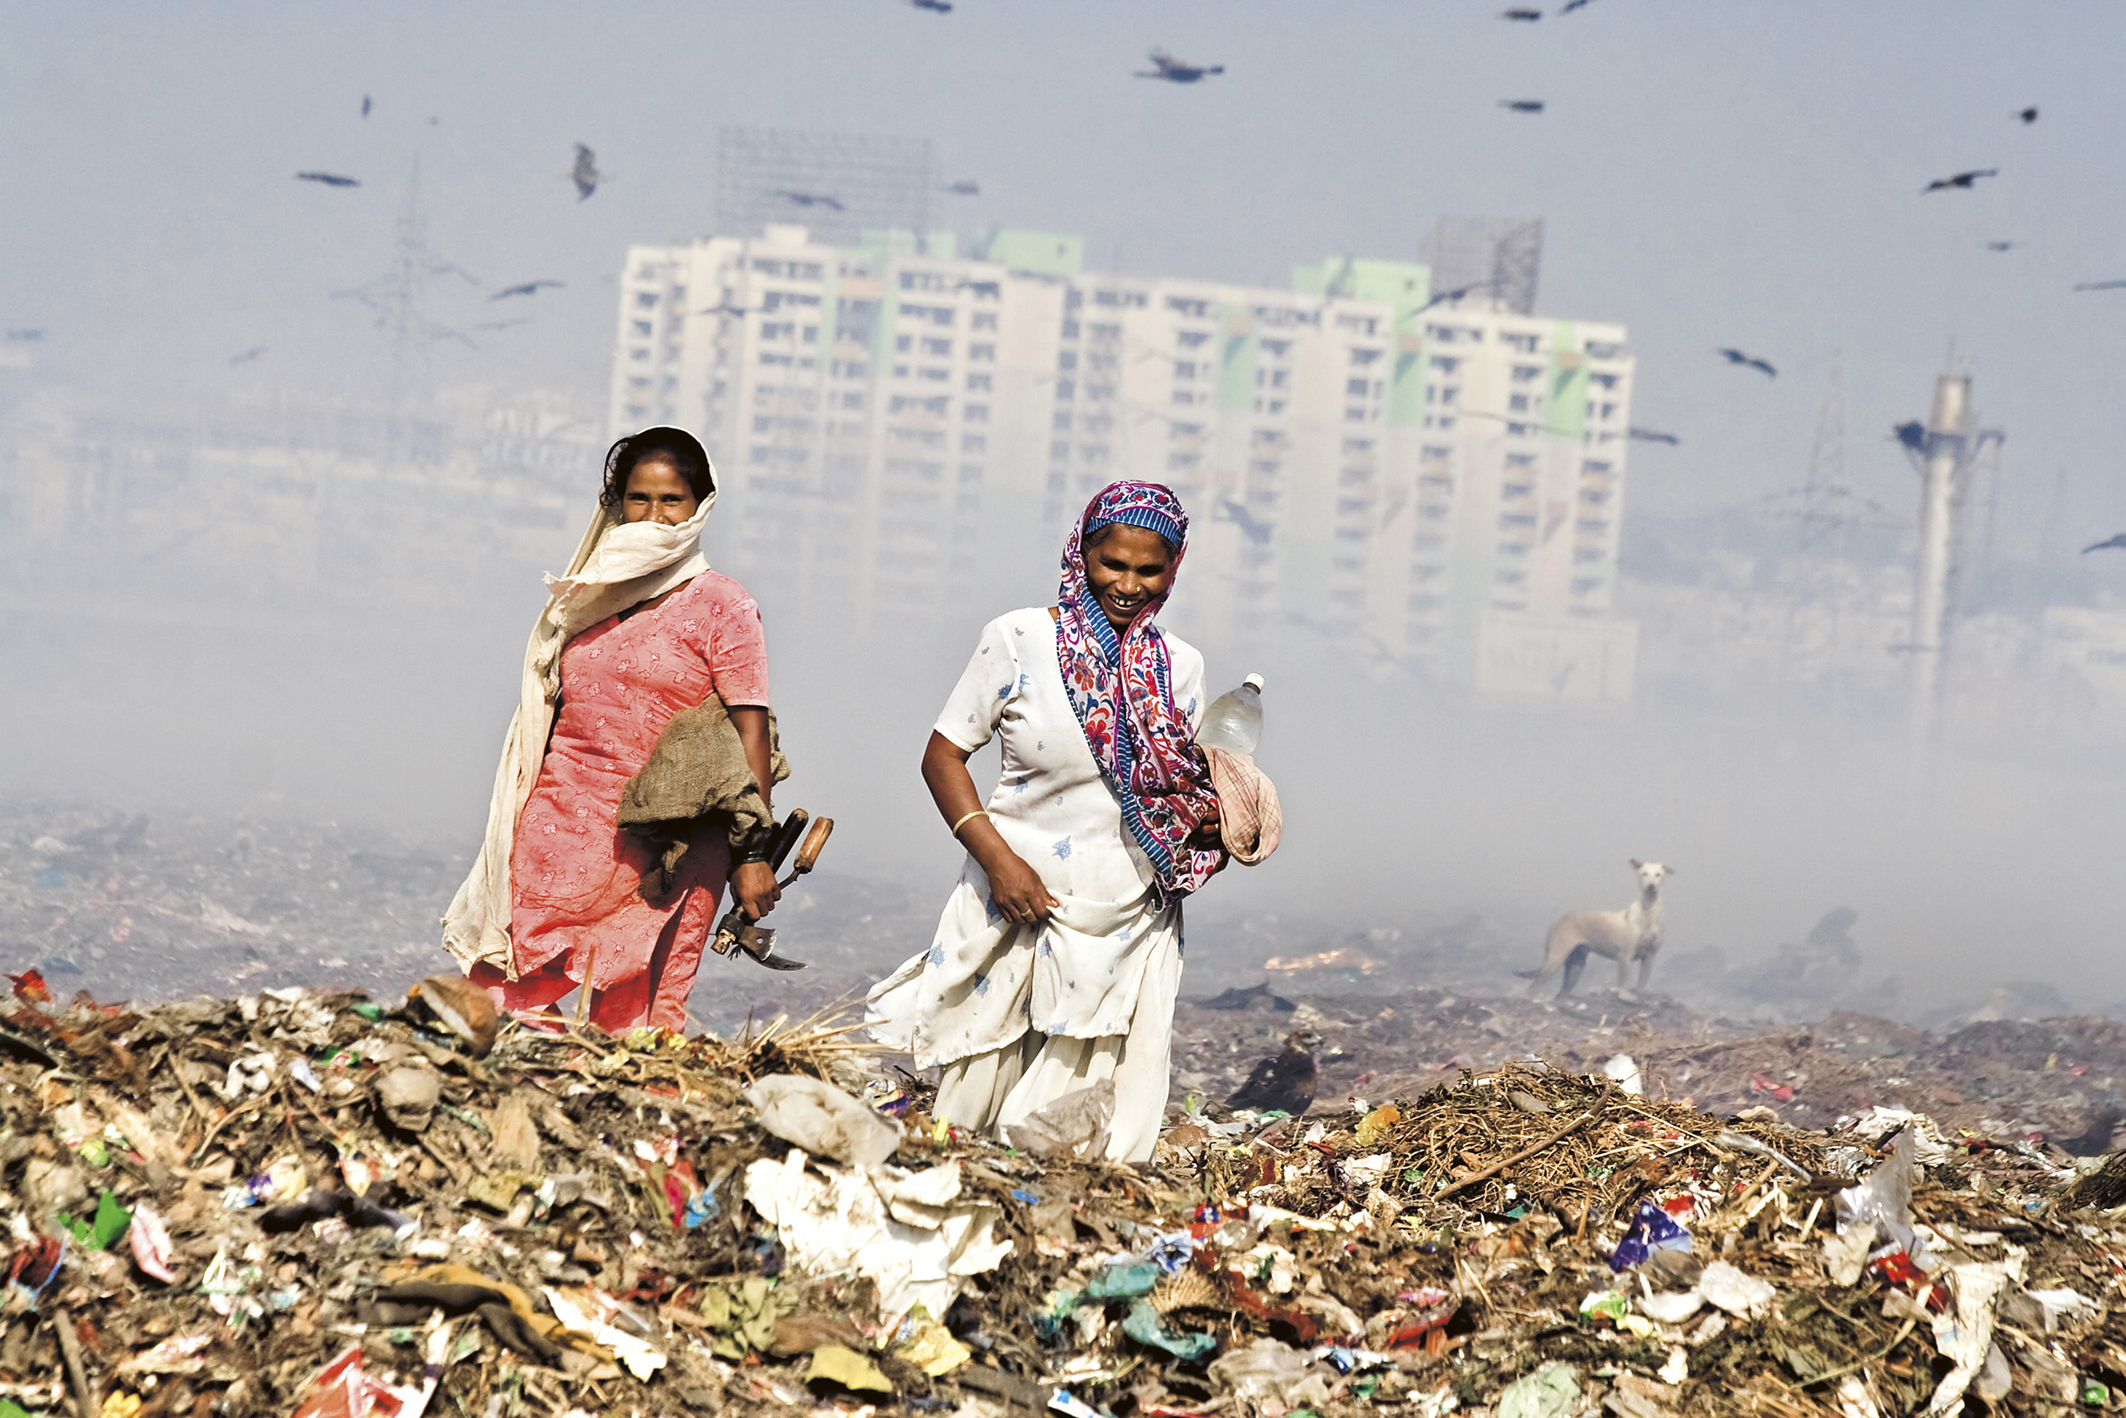 Tracing Waste - The Kabari's Contribution To Society